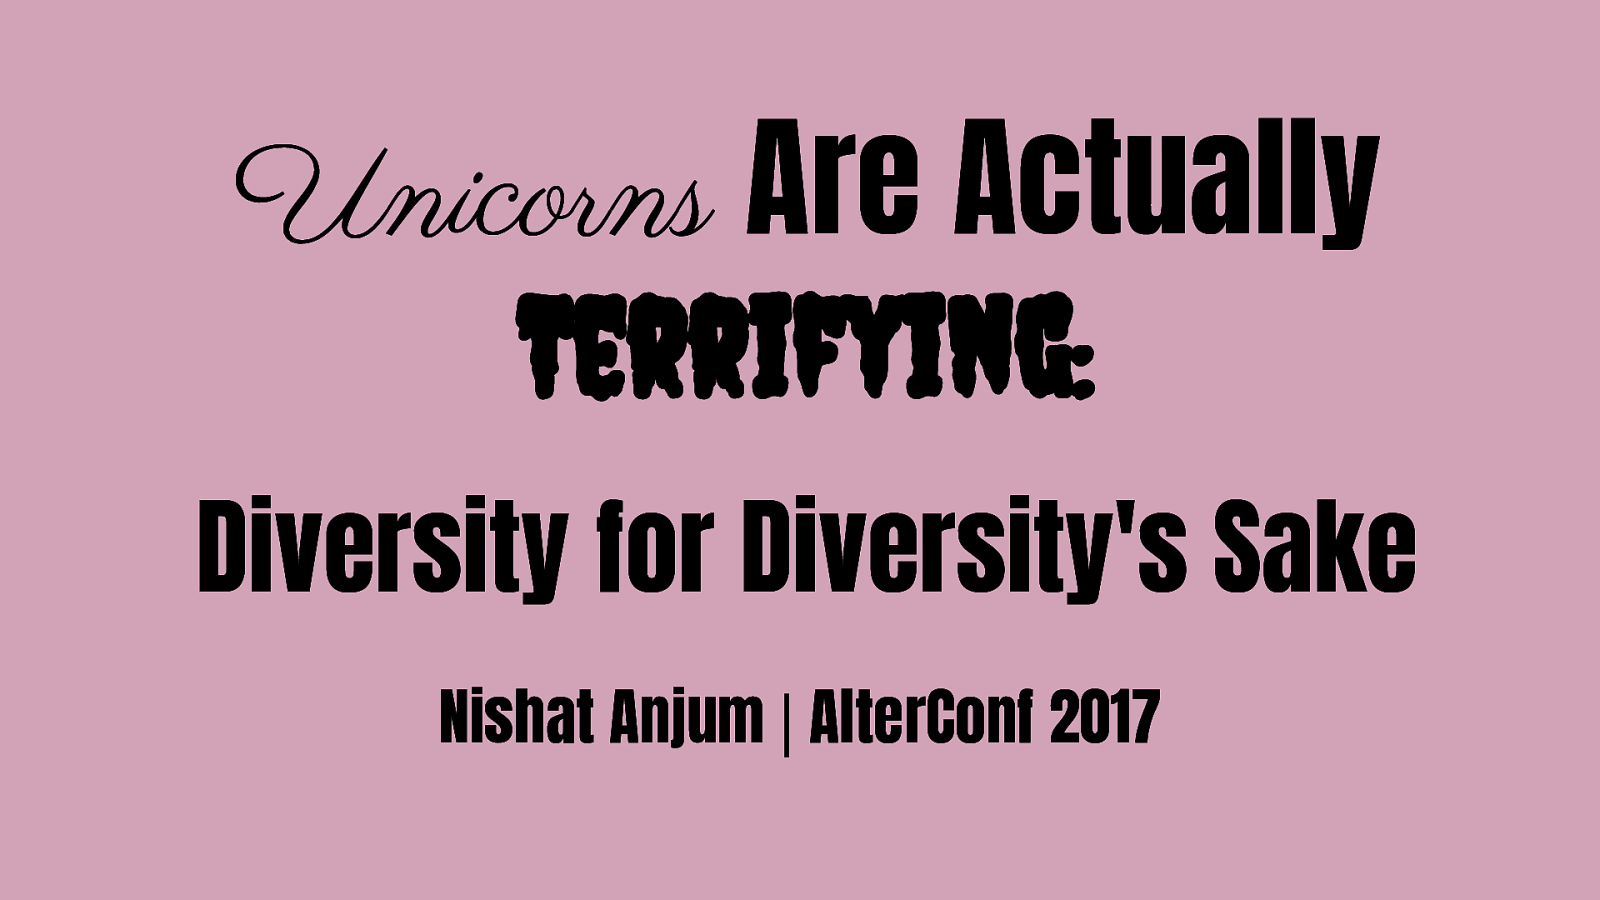 Unicorns Are Actually Terrifying: Diversity for Diversity's Sake